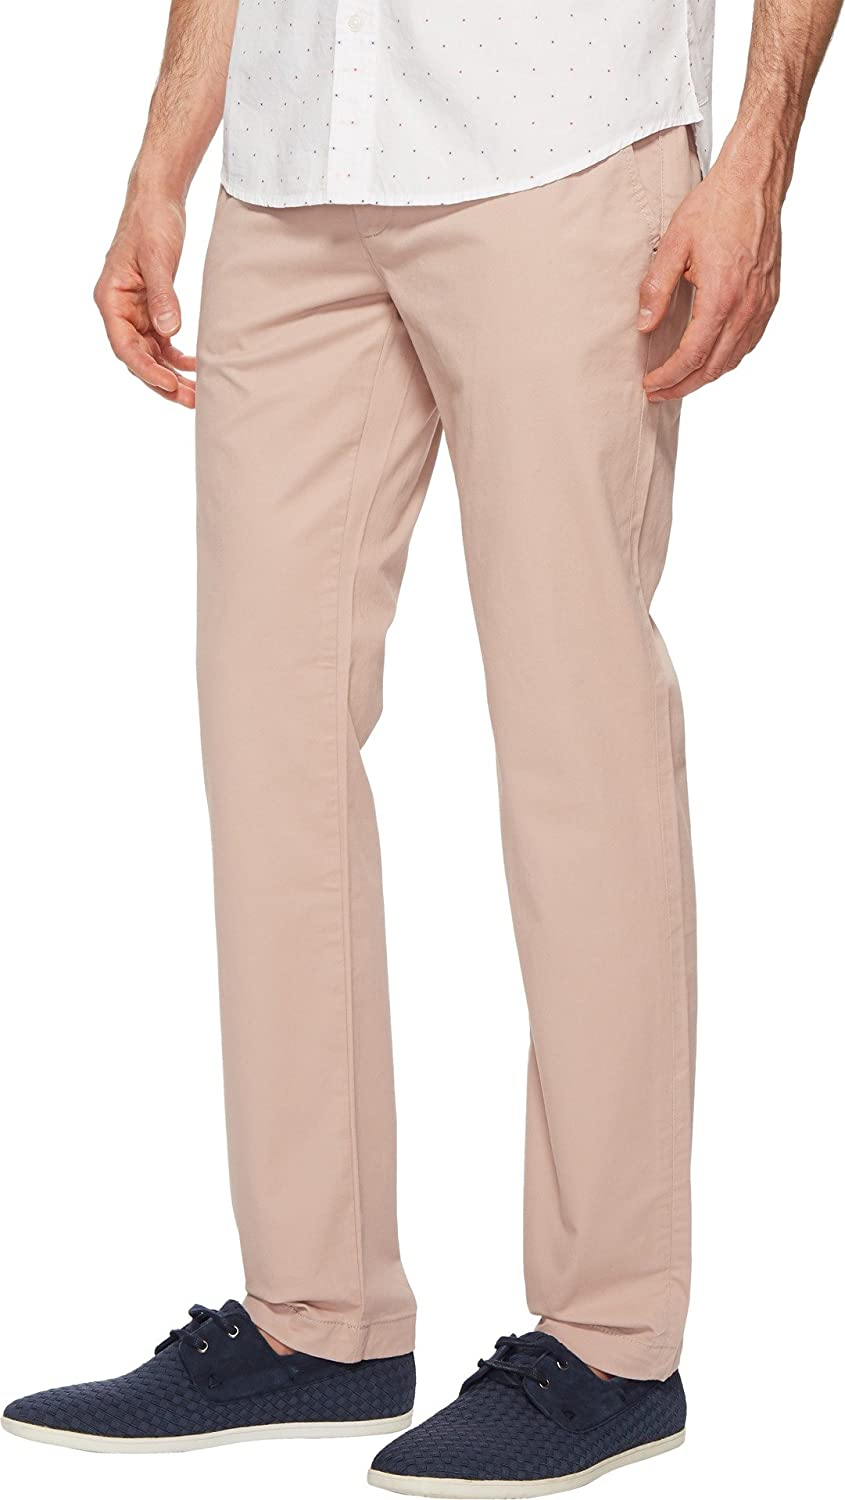 99f74914 Amazon.com: Ted Baker Men's Procor Solid Chino Pants Dusky Pink 28 R ...